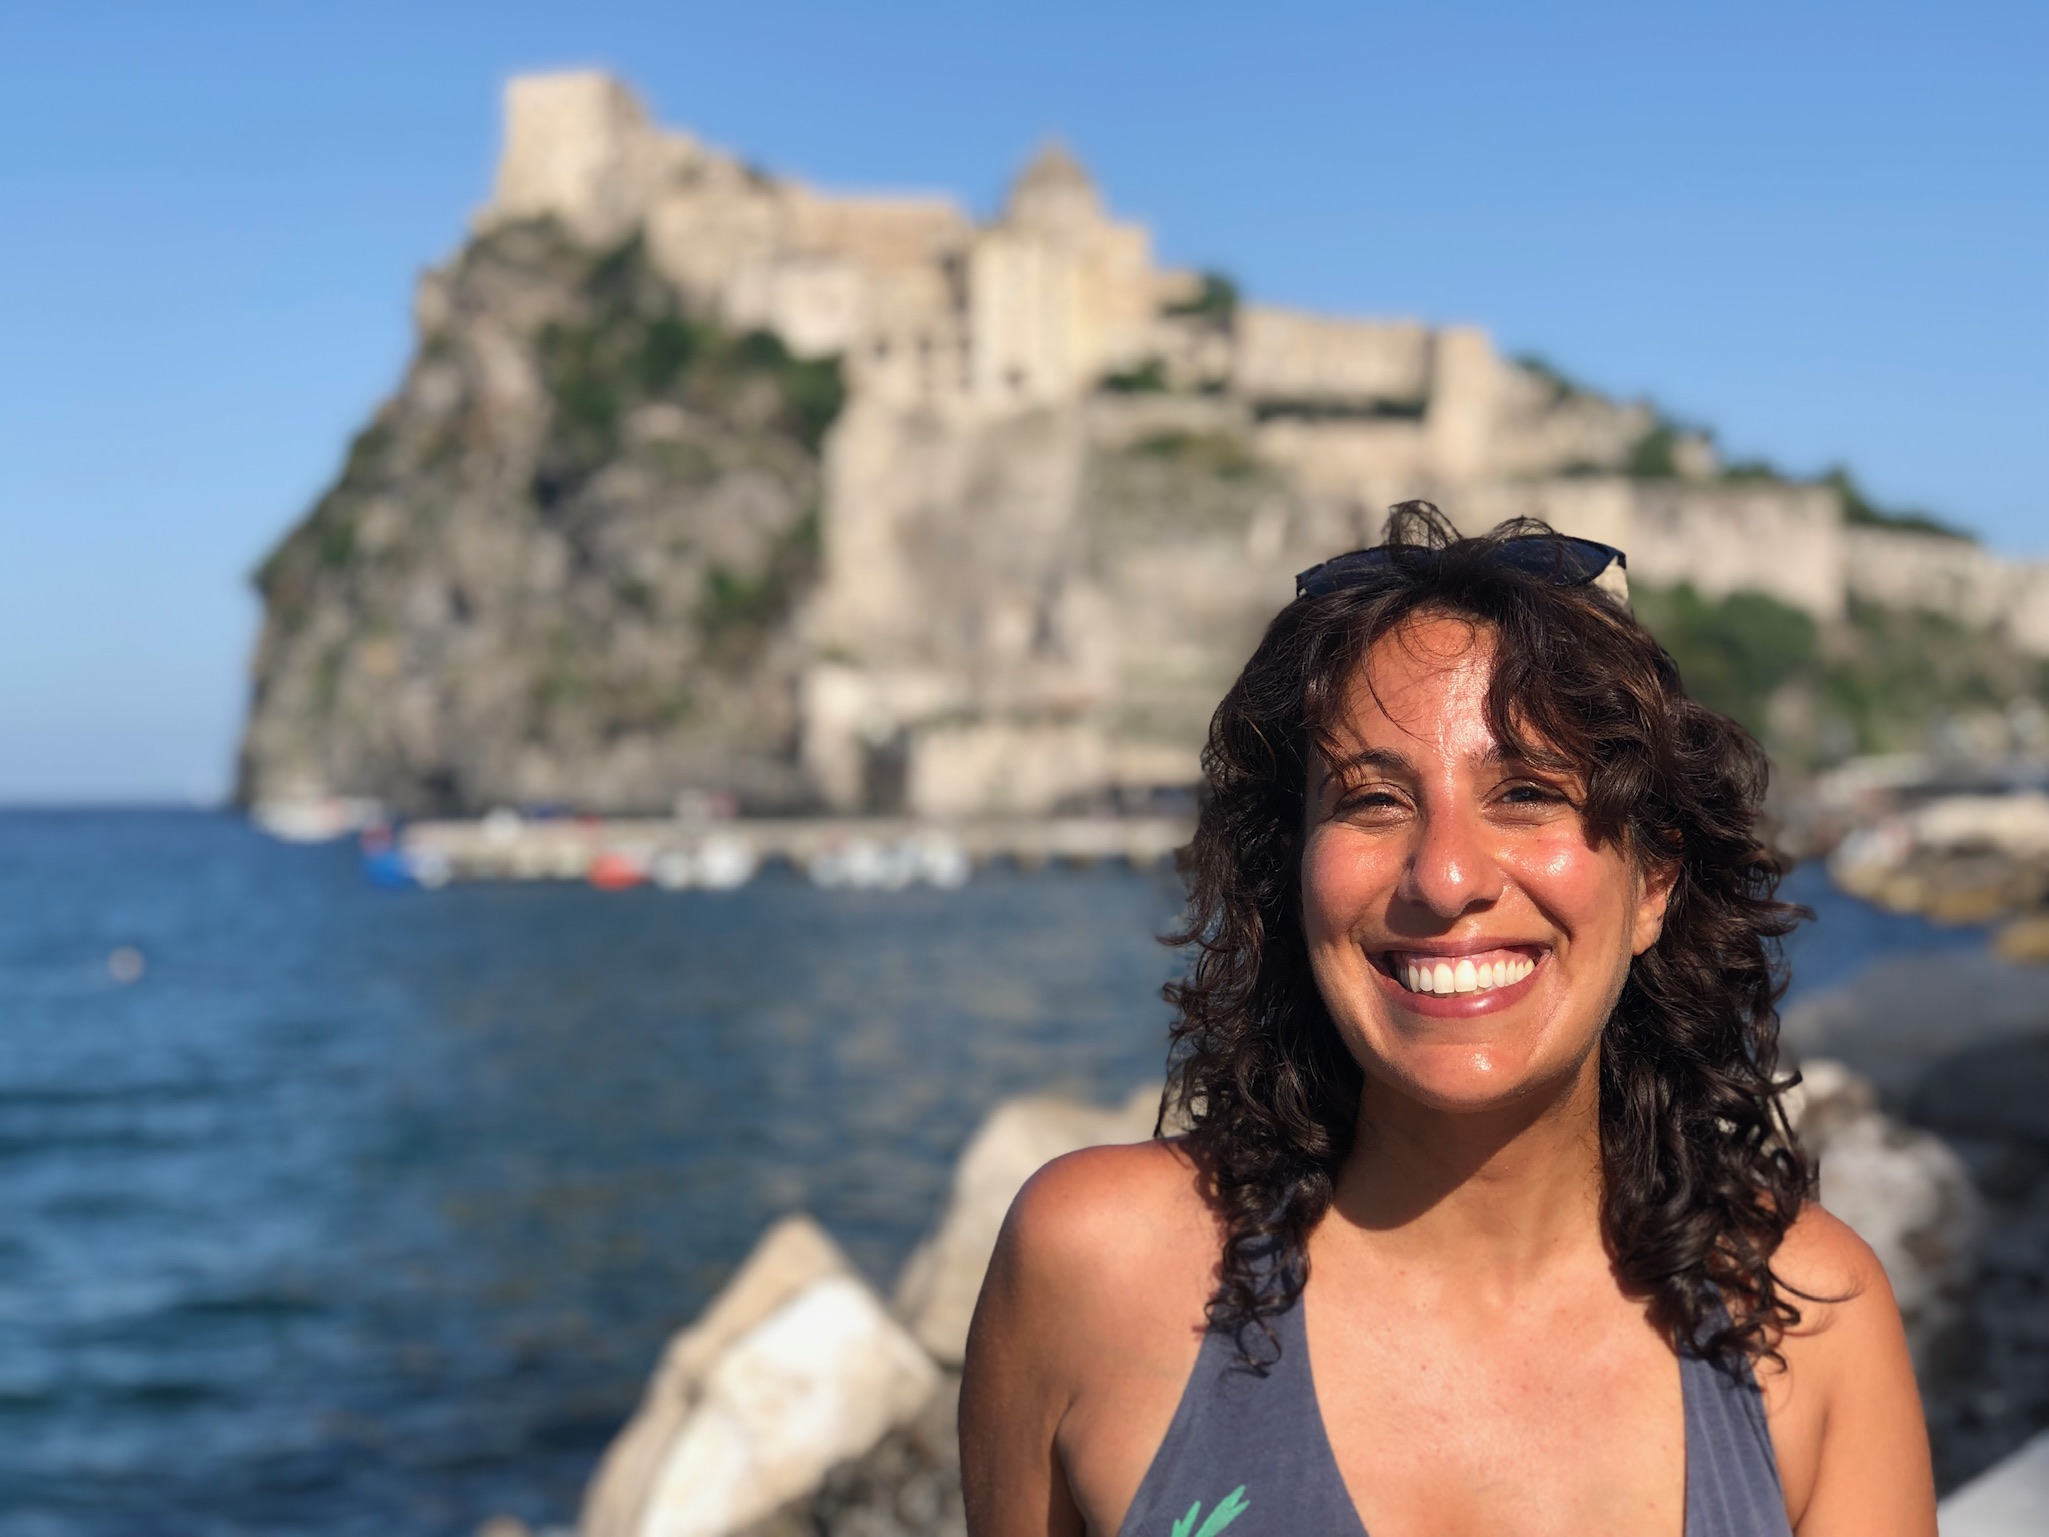 Italian Citizenship through Marriage - how to do it and keep your sanity